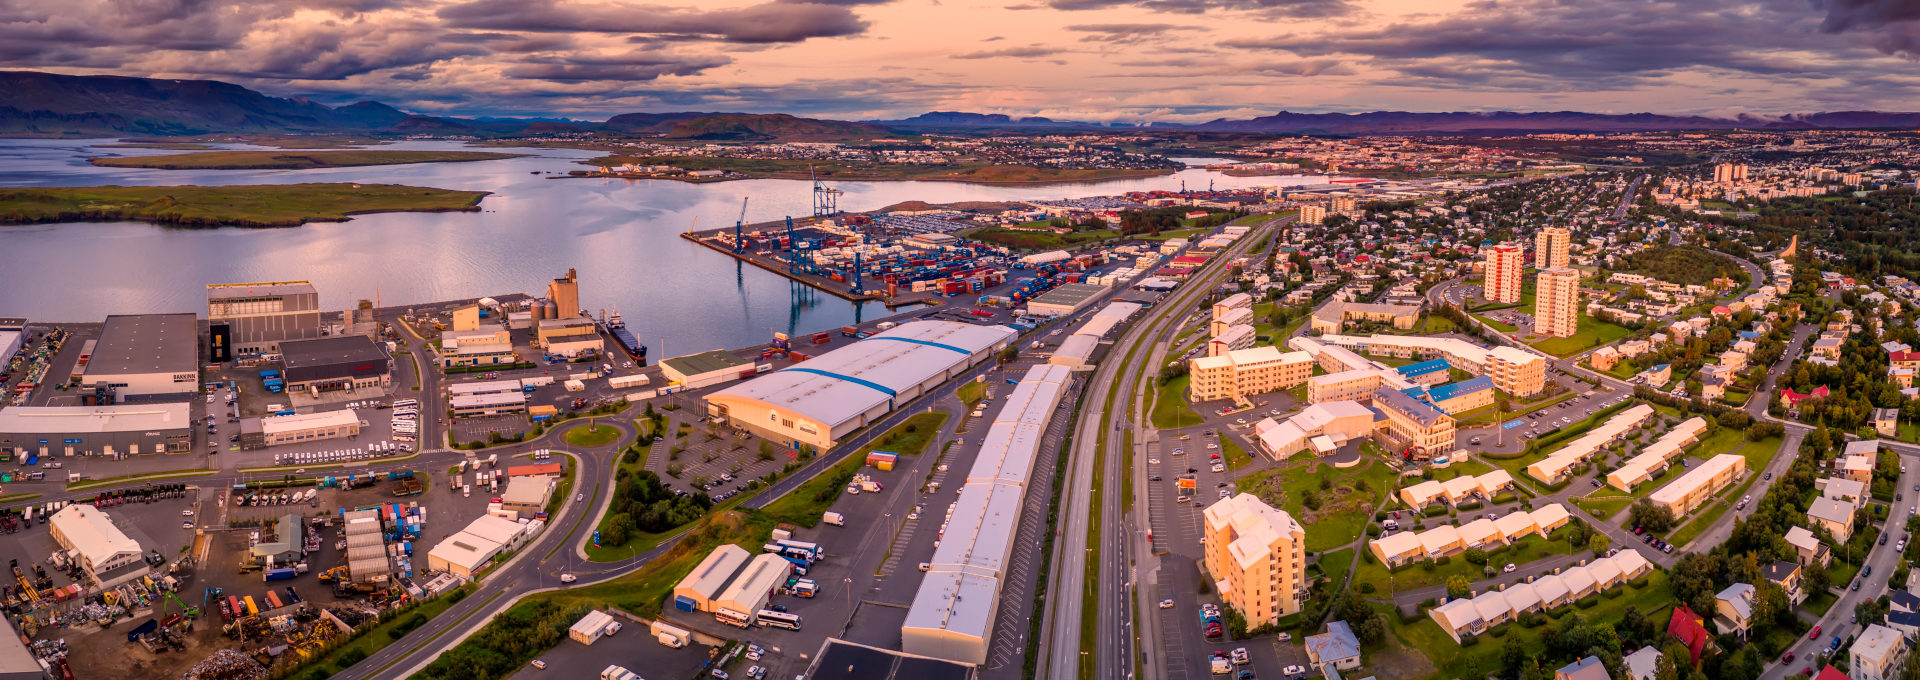 Shipping port, Sundahofn and buildings,  Reykjavik, Iceland